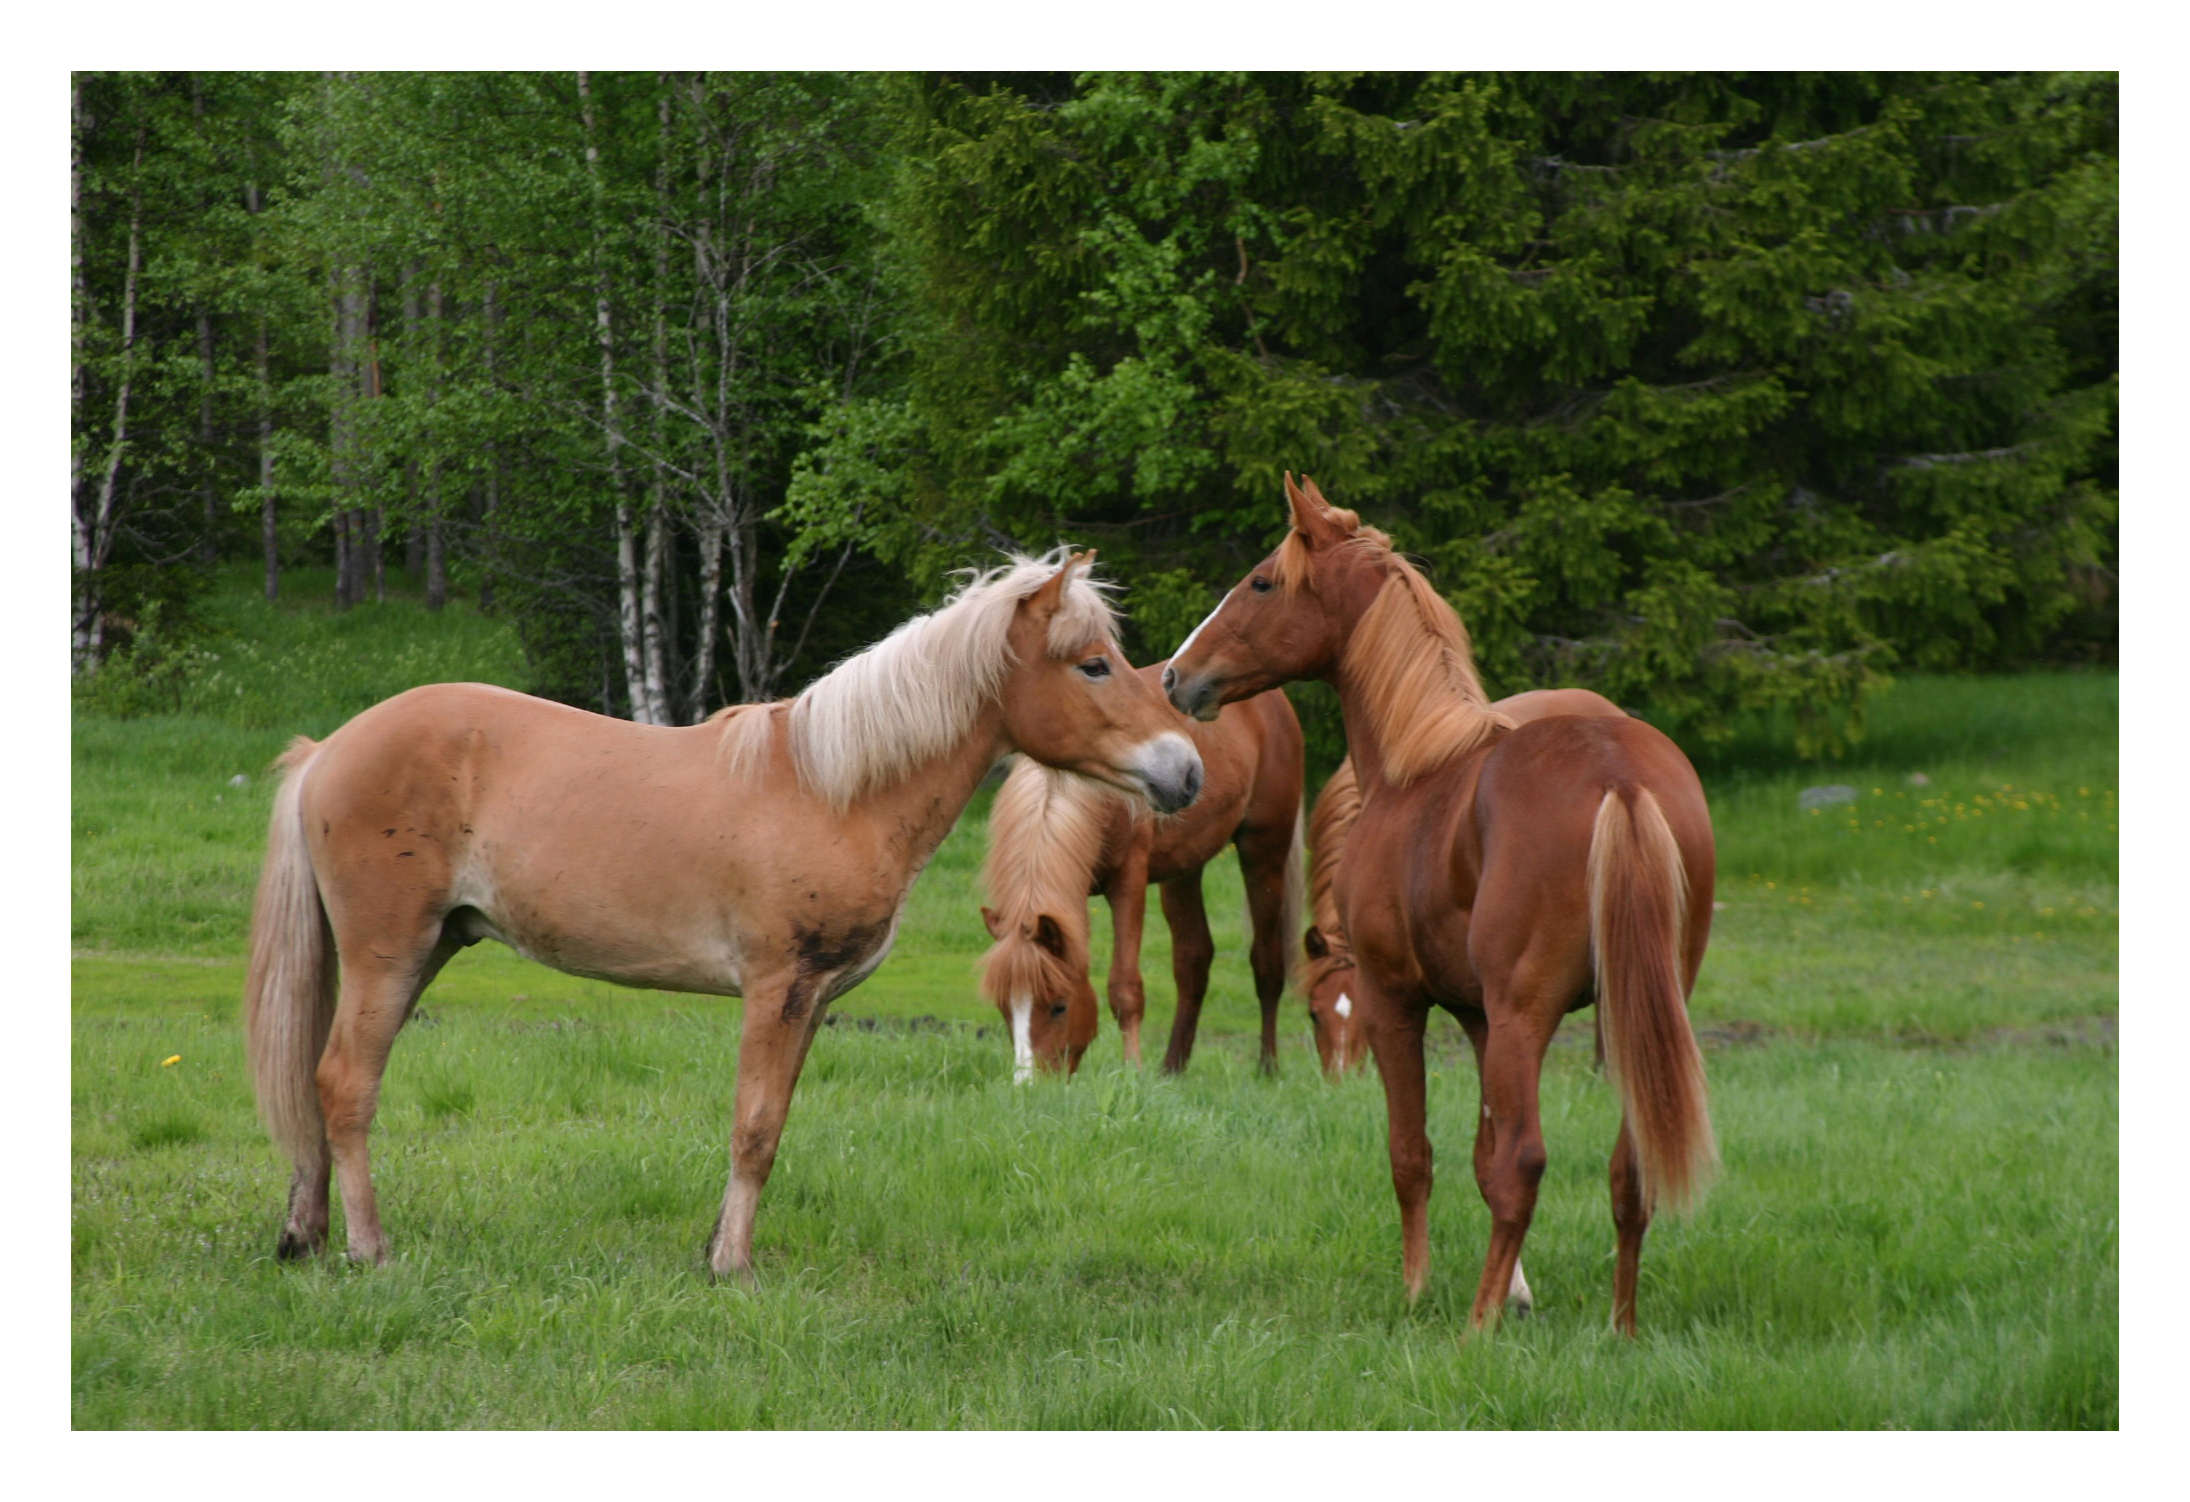 horses free images2